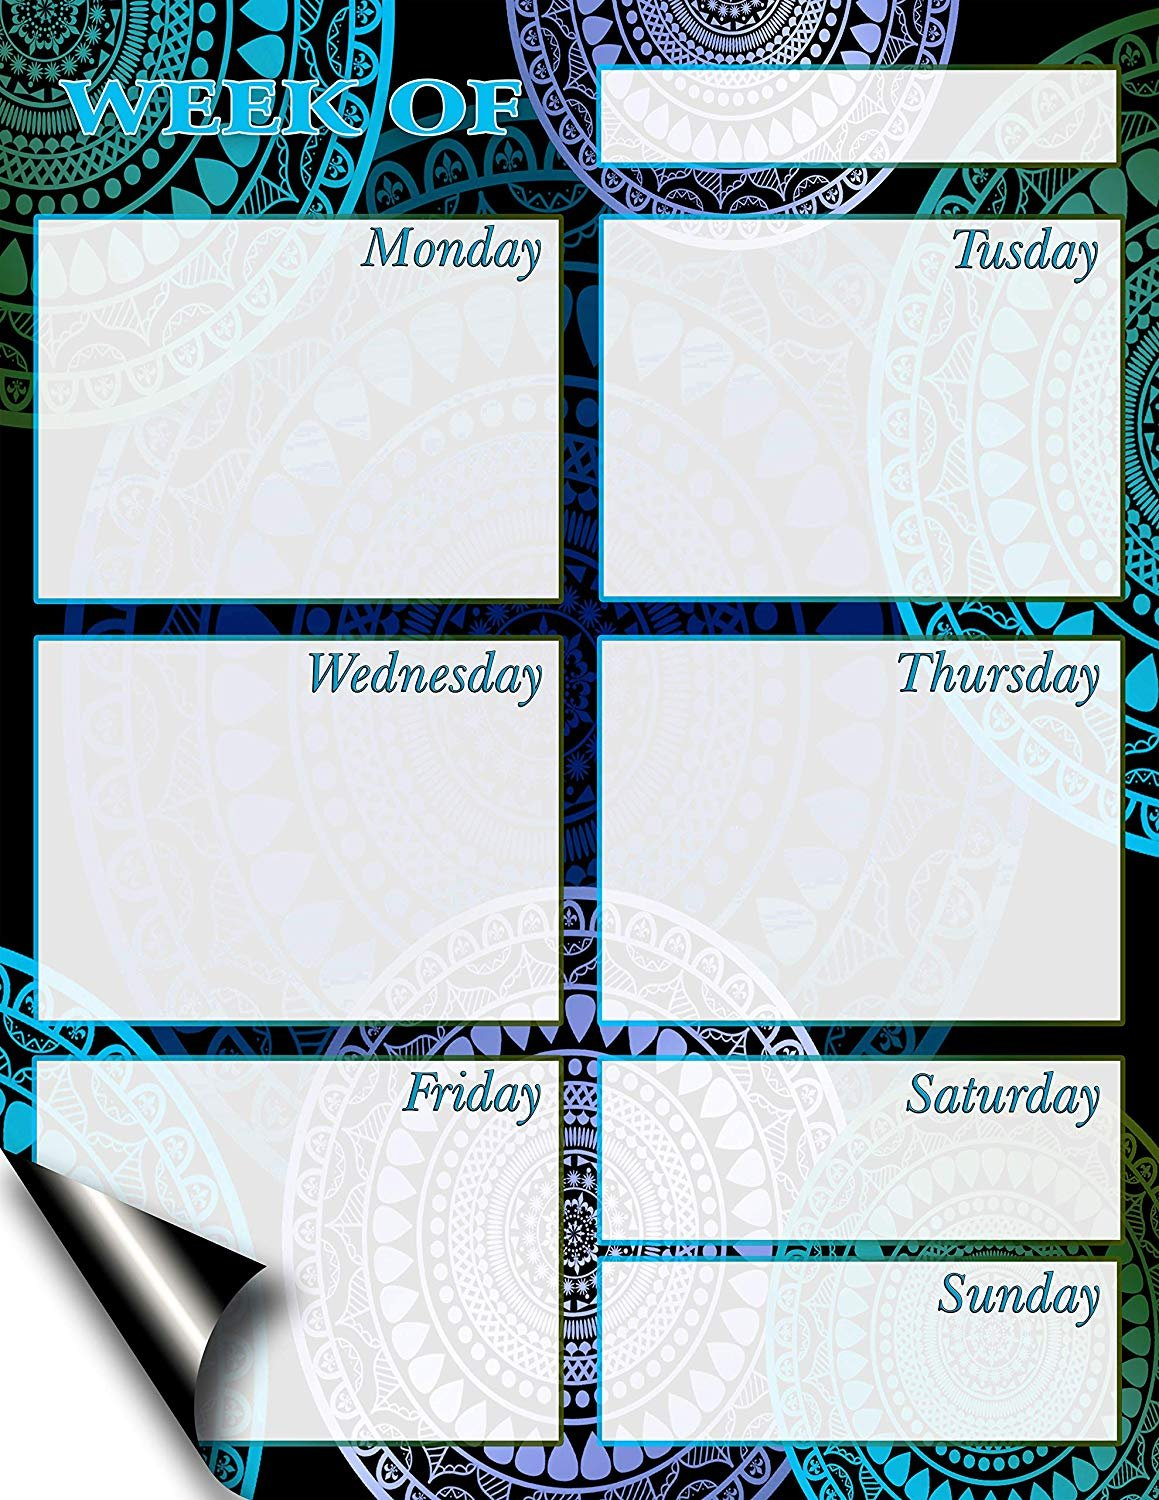 Chore Chart/Weekly Planner/to Do List/Message Board - (Edition #5) (Weekly Planner)